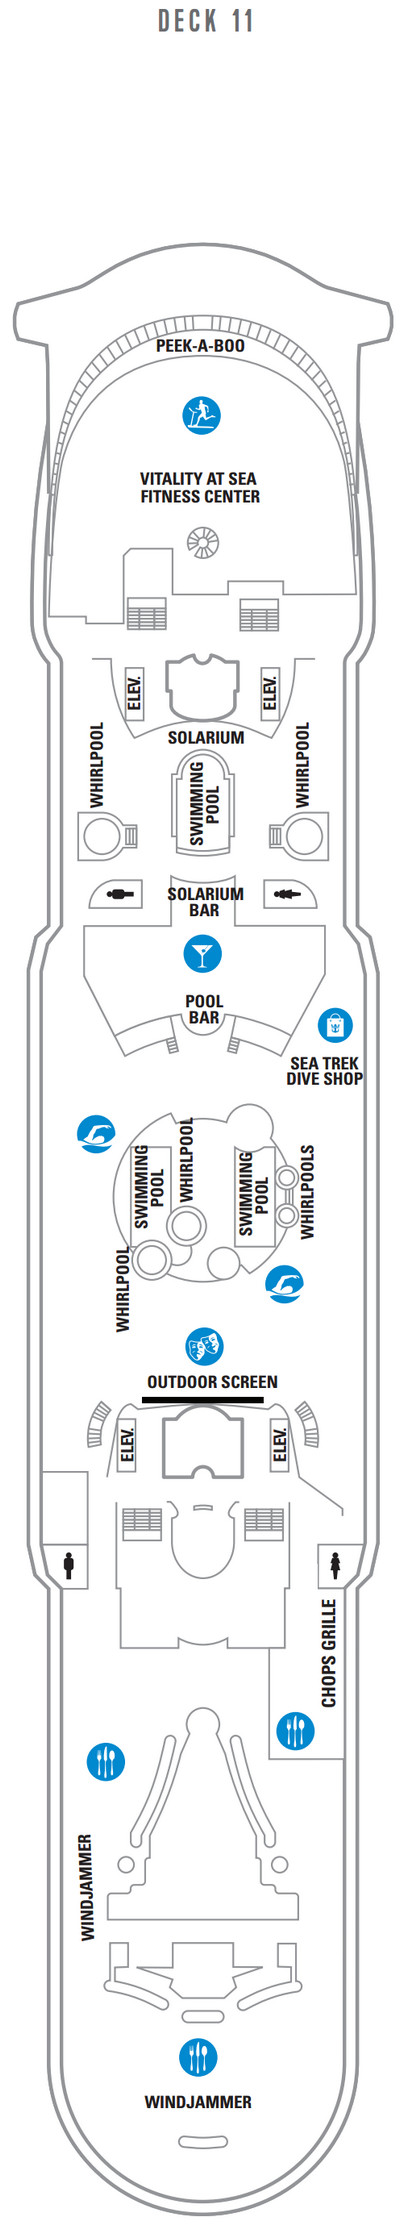 Explorer Of The Seas Deck 11 layout